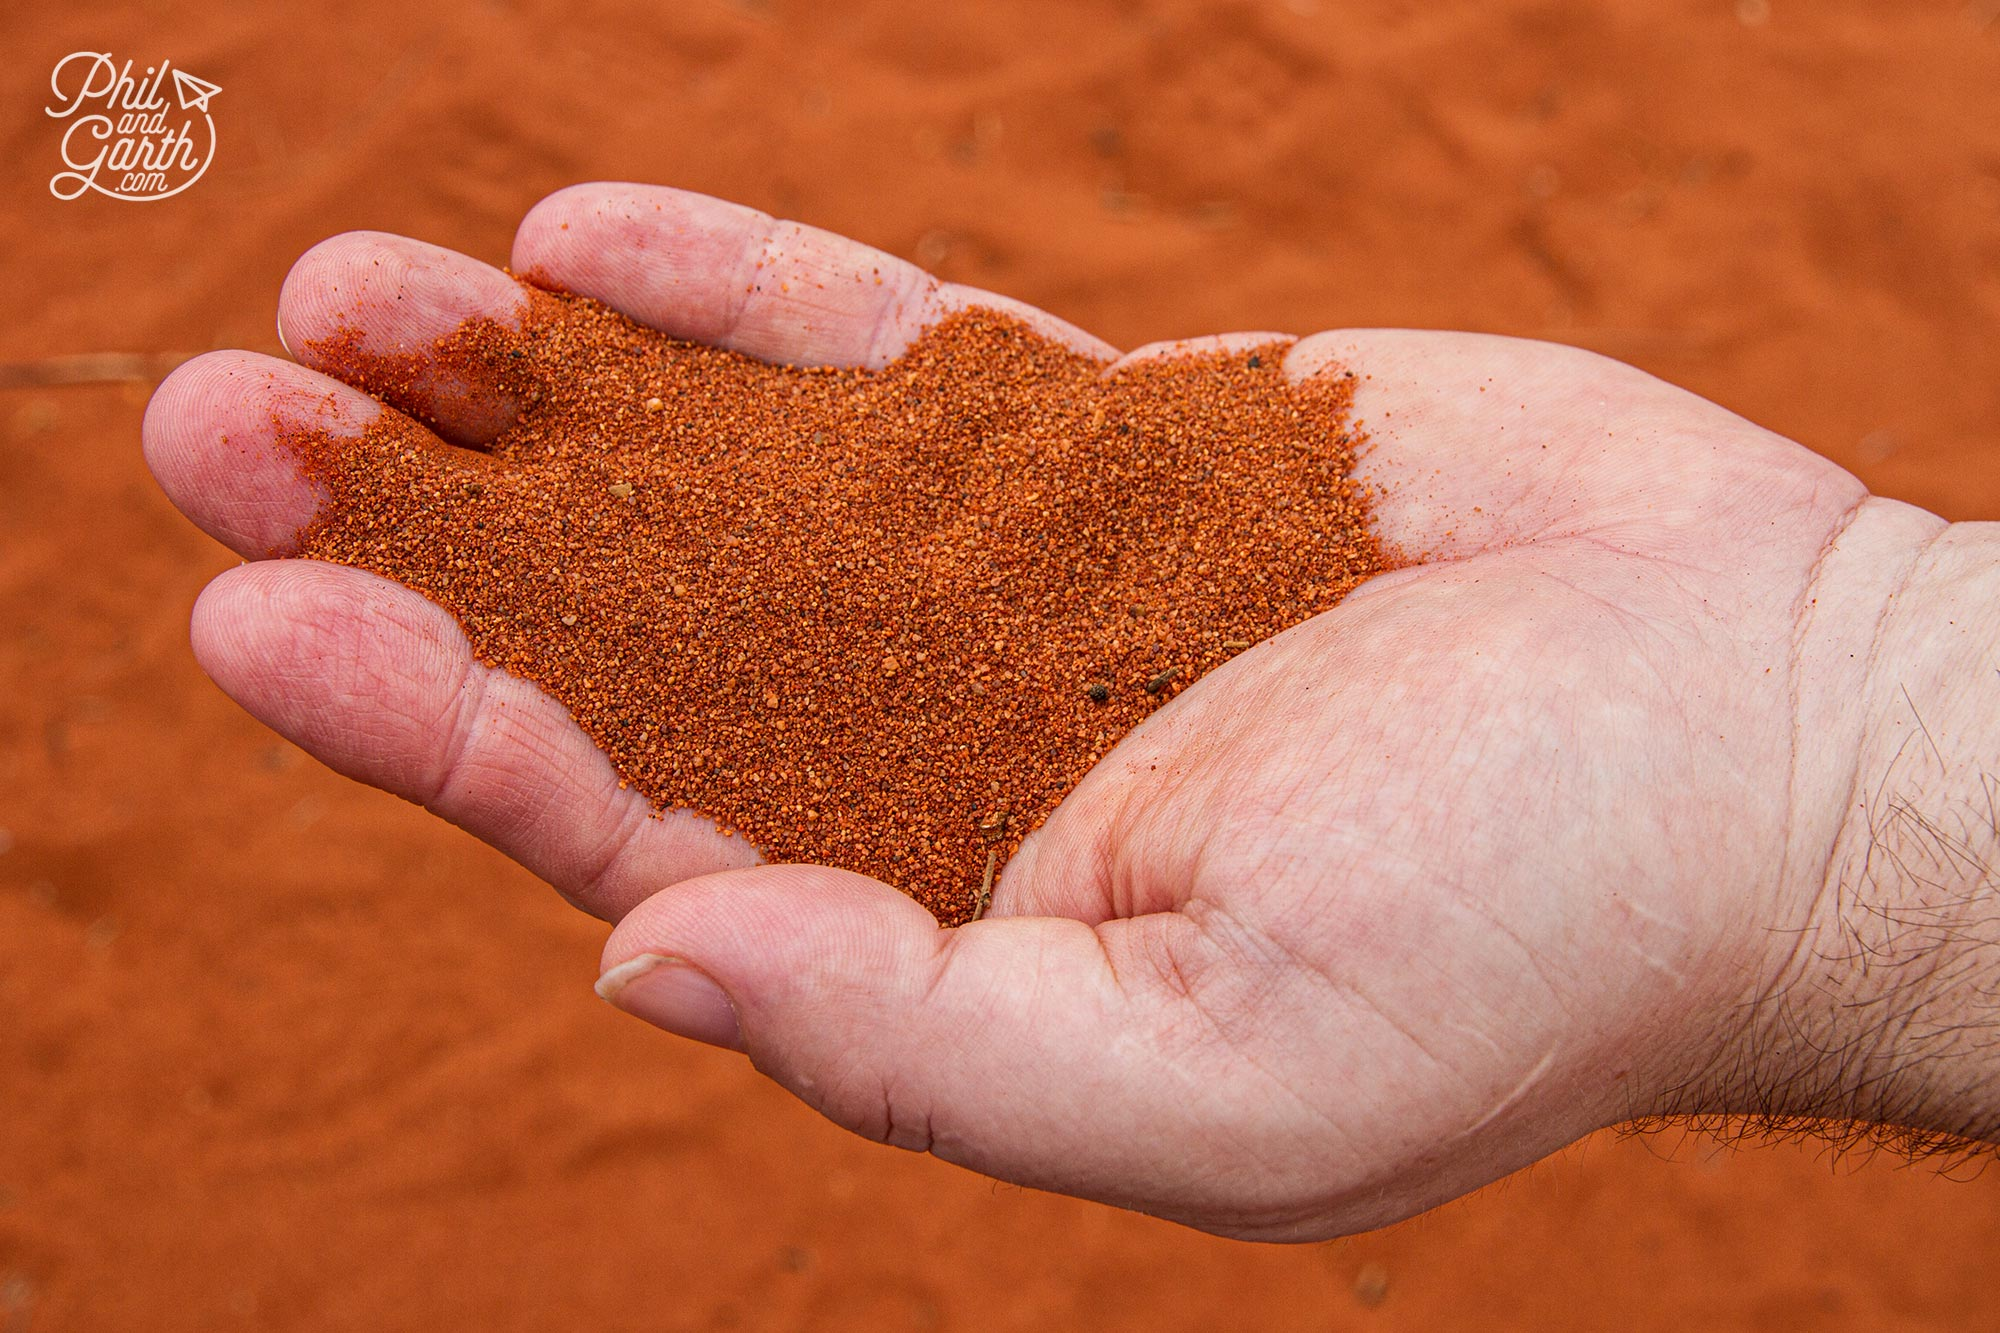 The rock and sand is red because of the iron in the rock which turns rusty